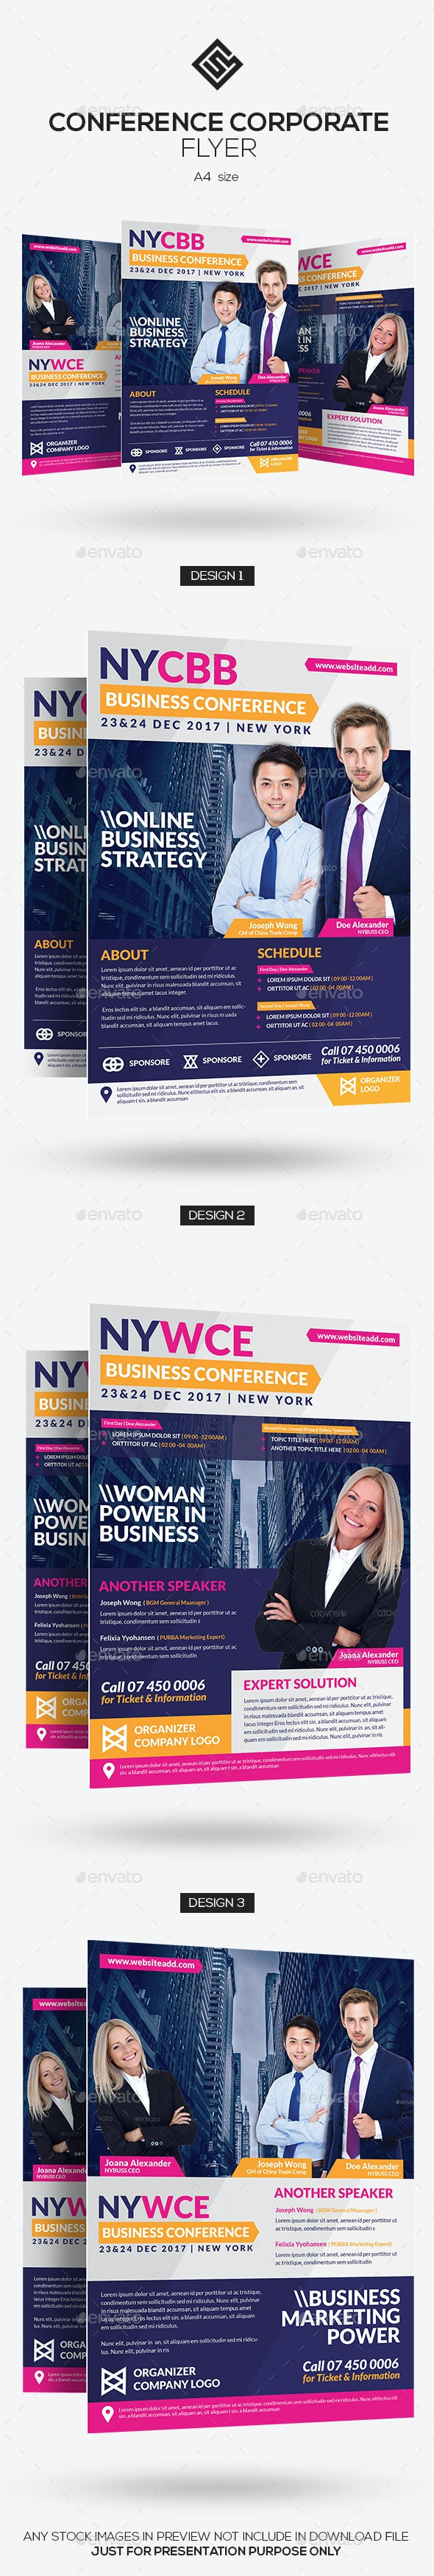 Conference Corporate Flyer - Corporate Flyers